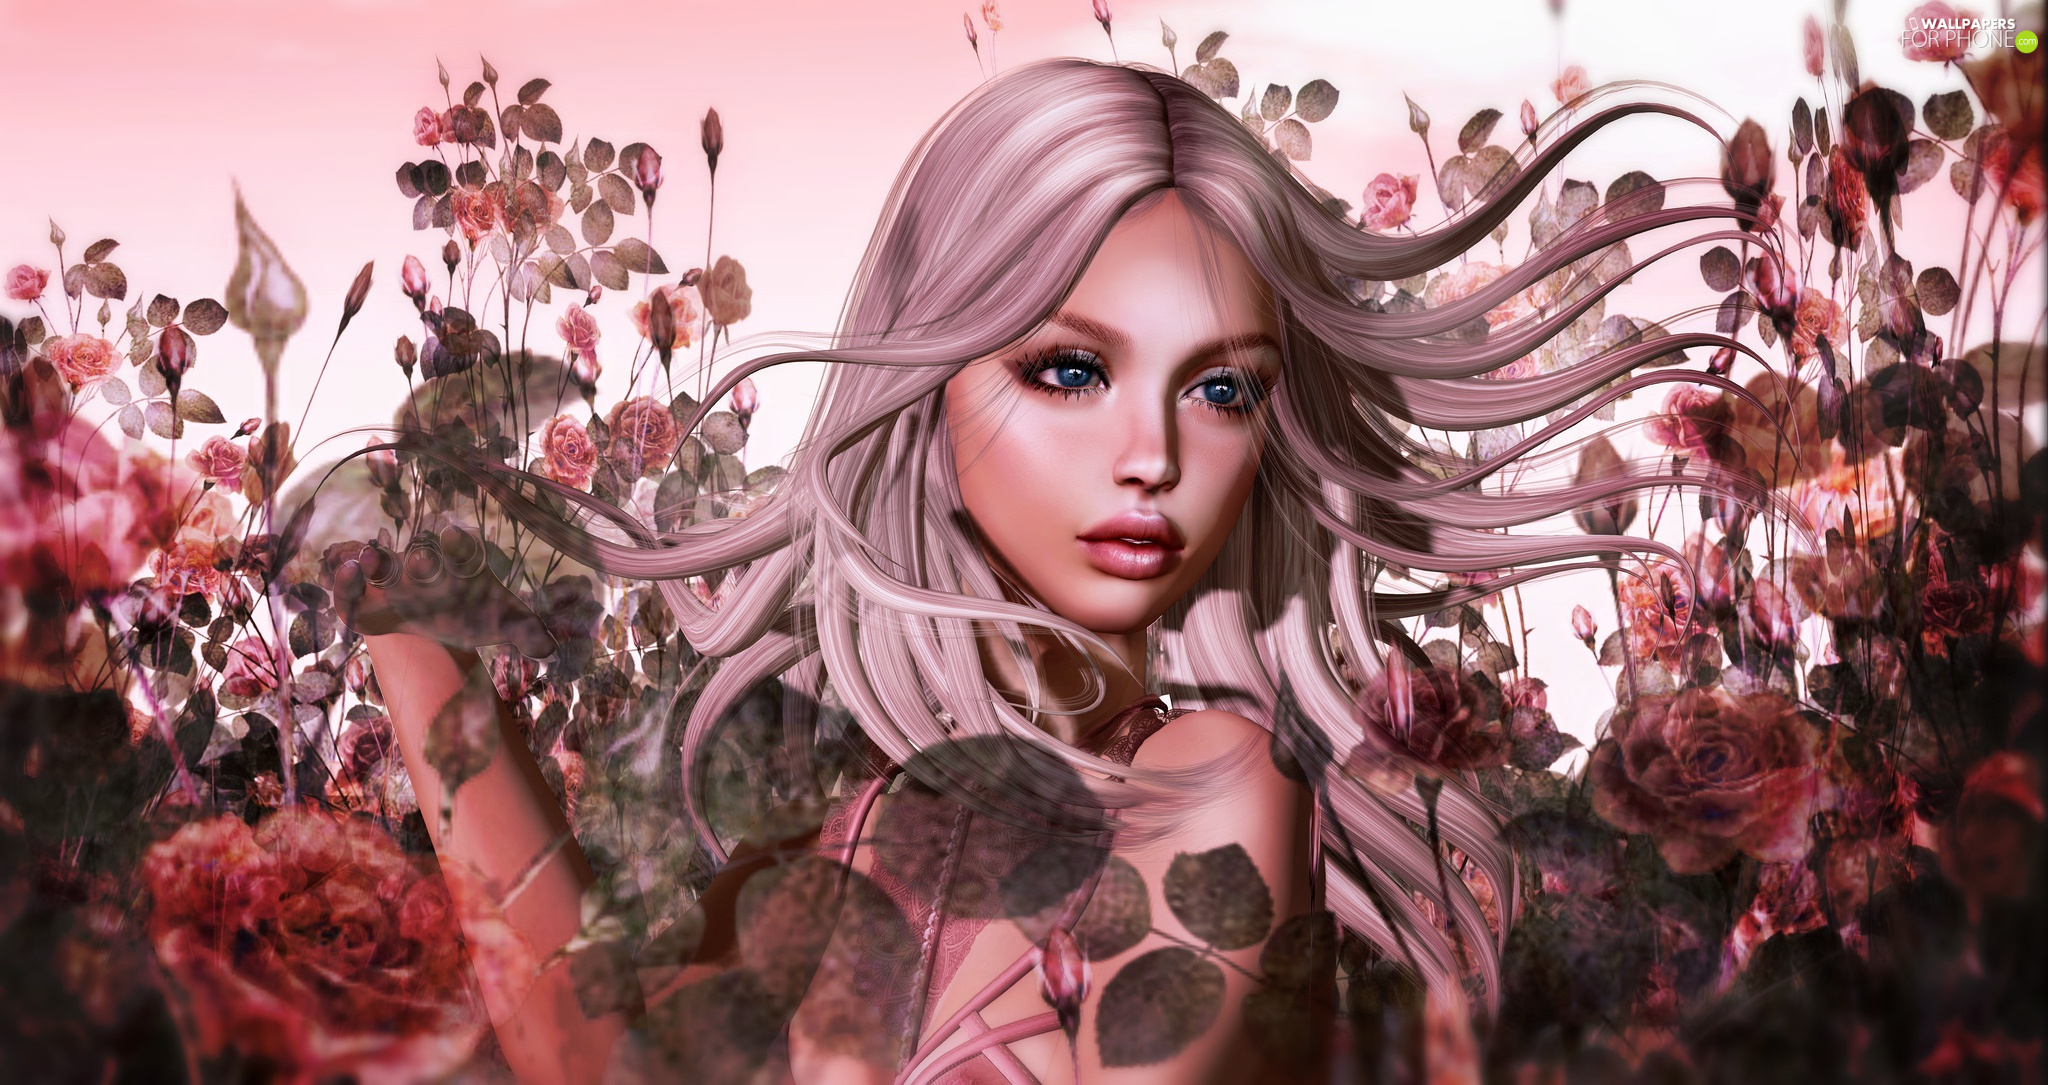 dispelled, Women, Flowers, graphics, Hair, face